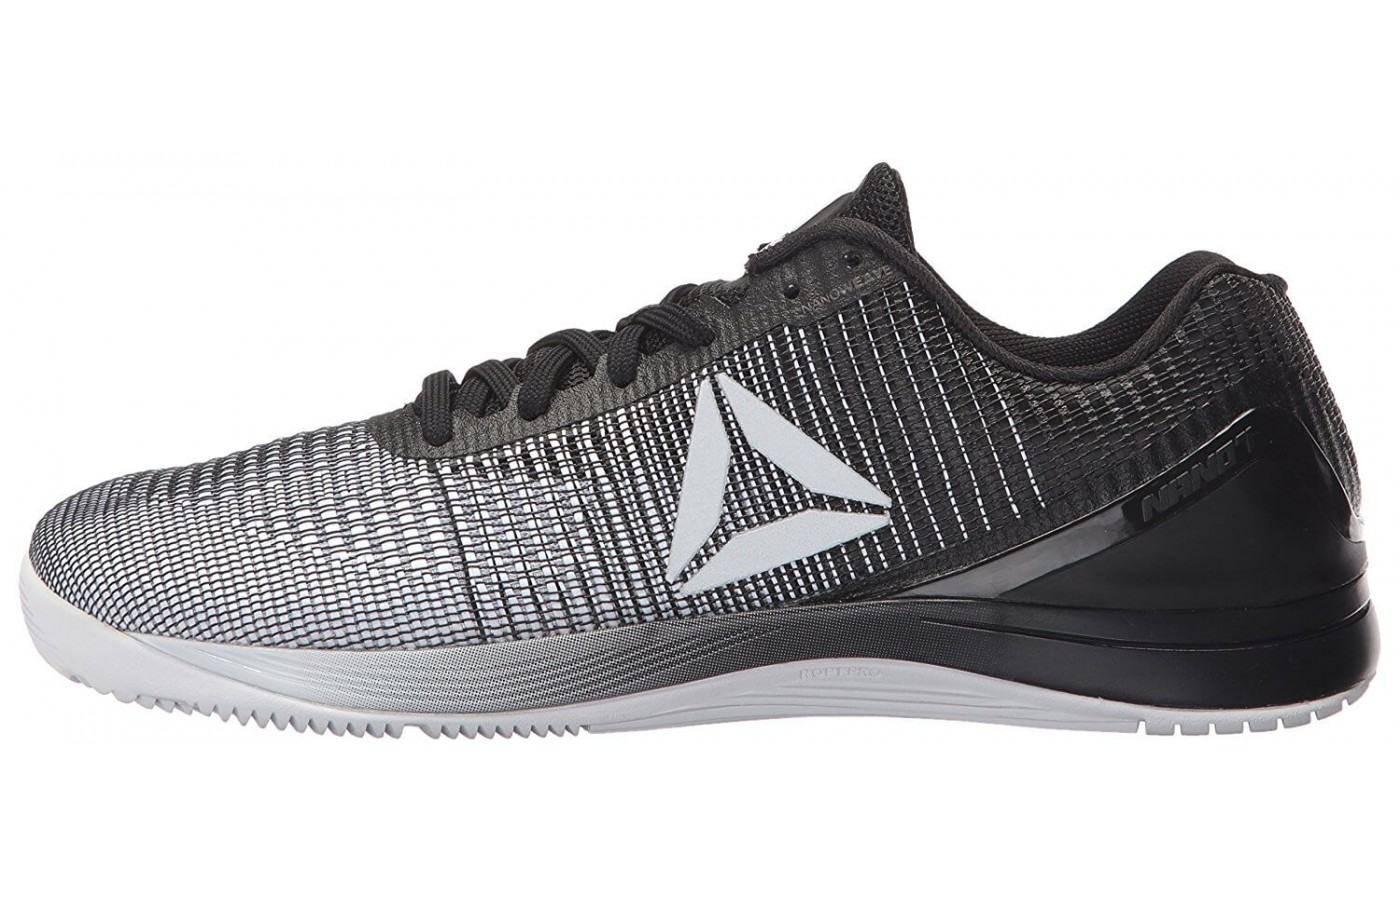 Due to the newly designed upper, the Reebok Crossfit Nano 7 Weave closely resembles traditional running shoes.